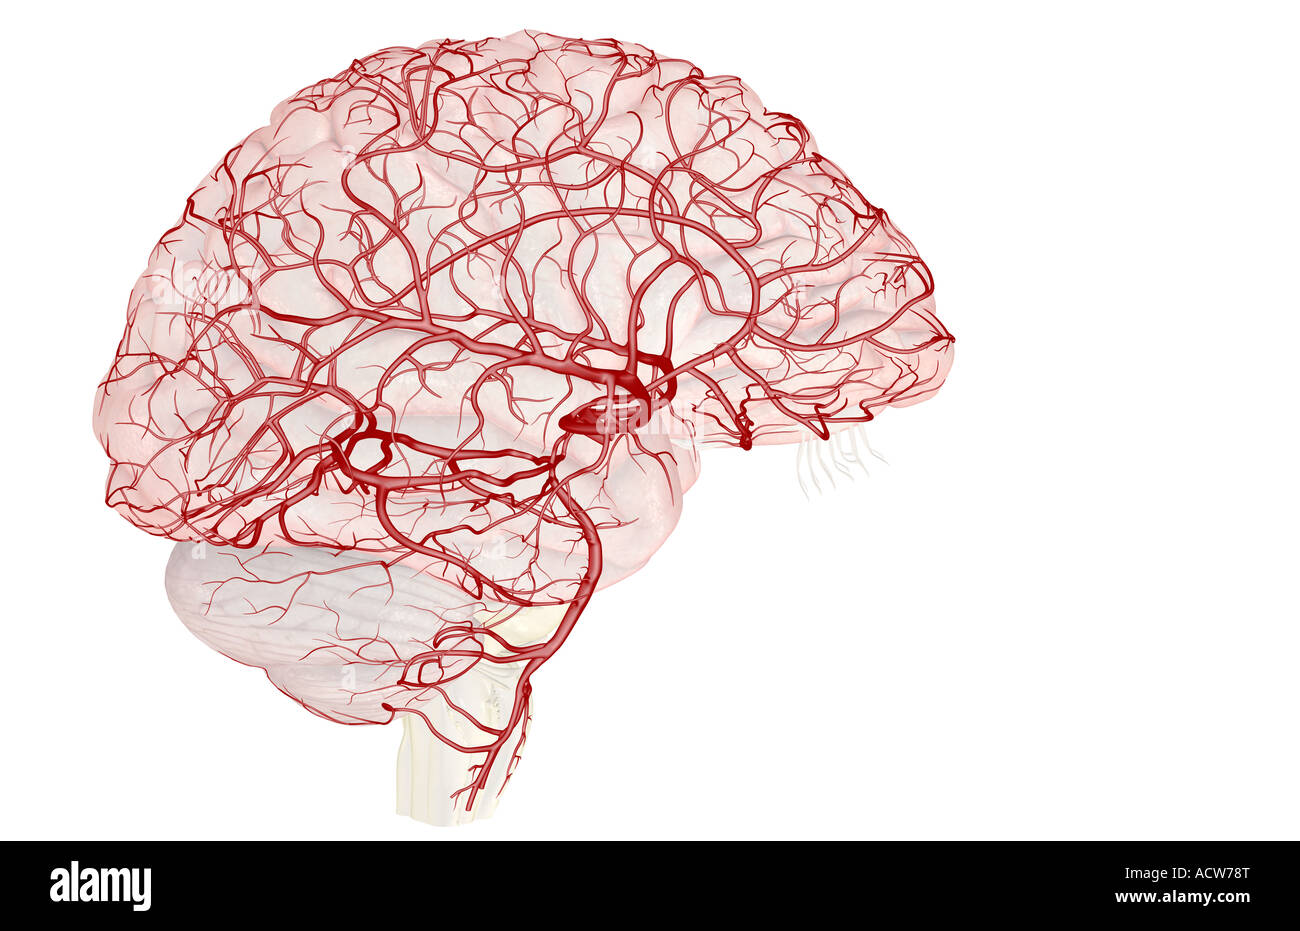 The arteries of the brain - Stock Image